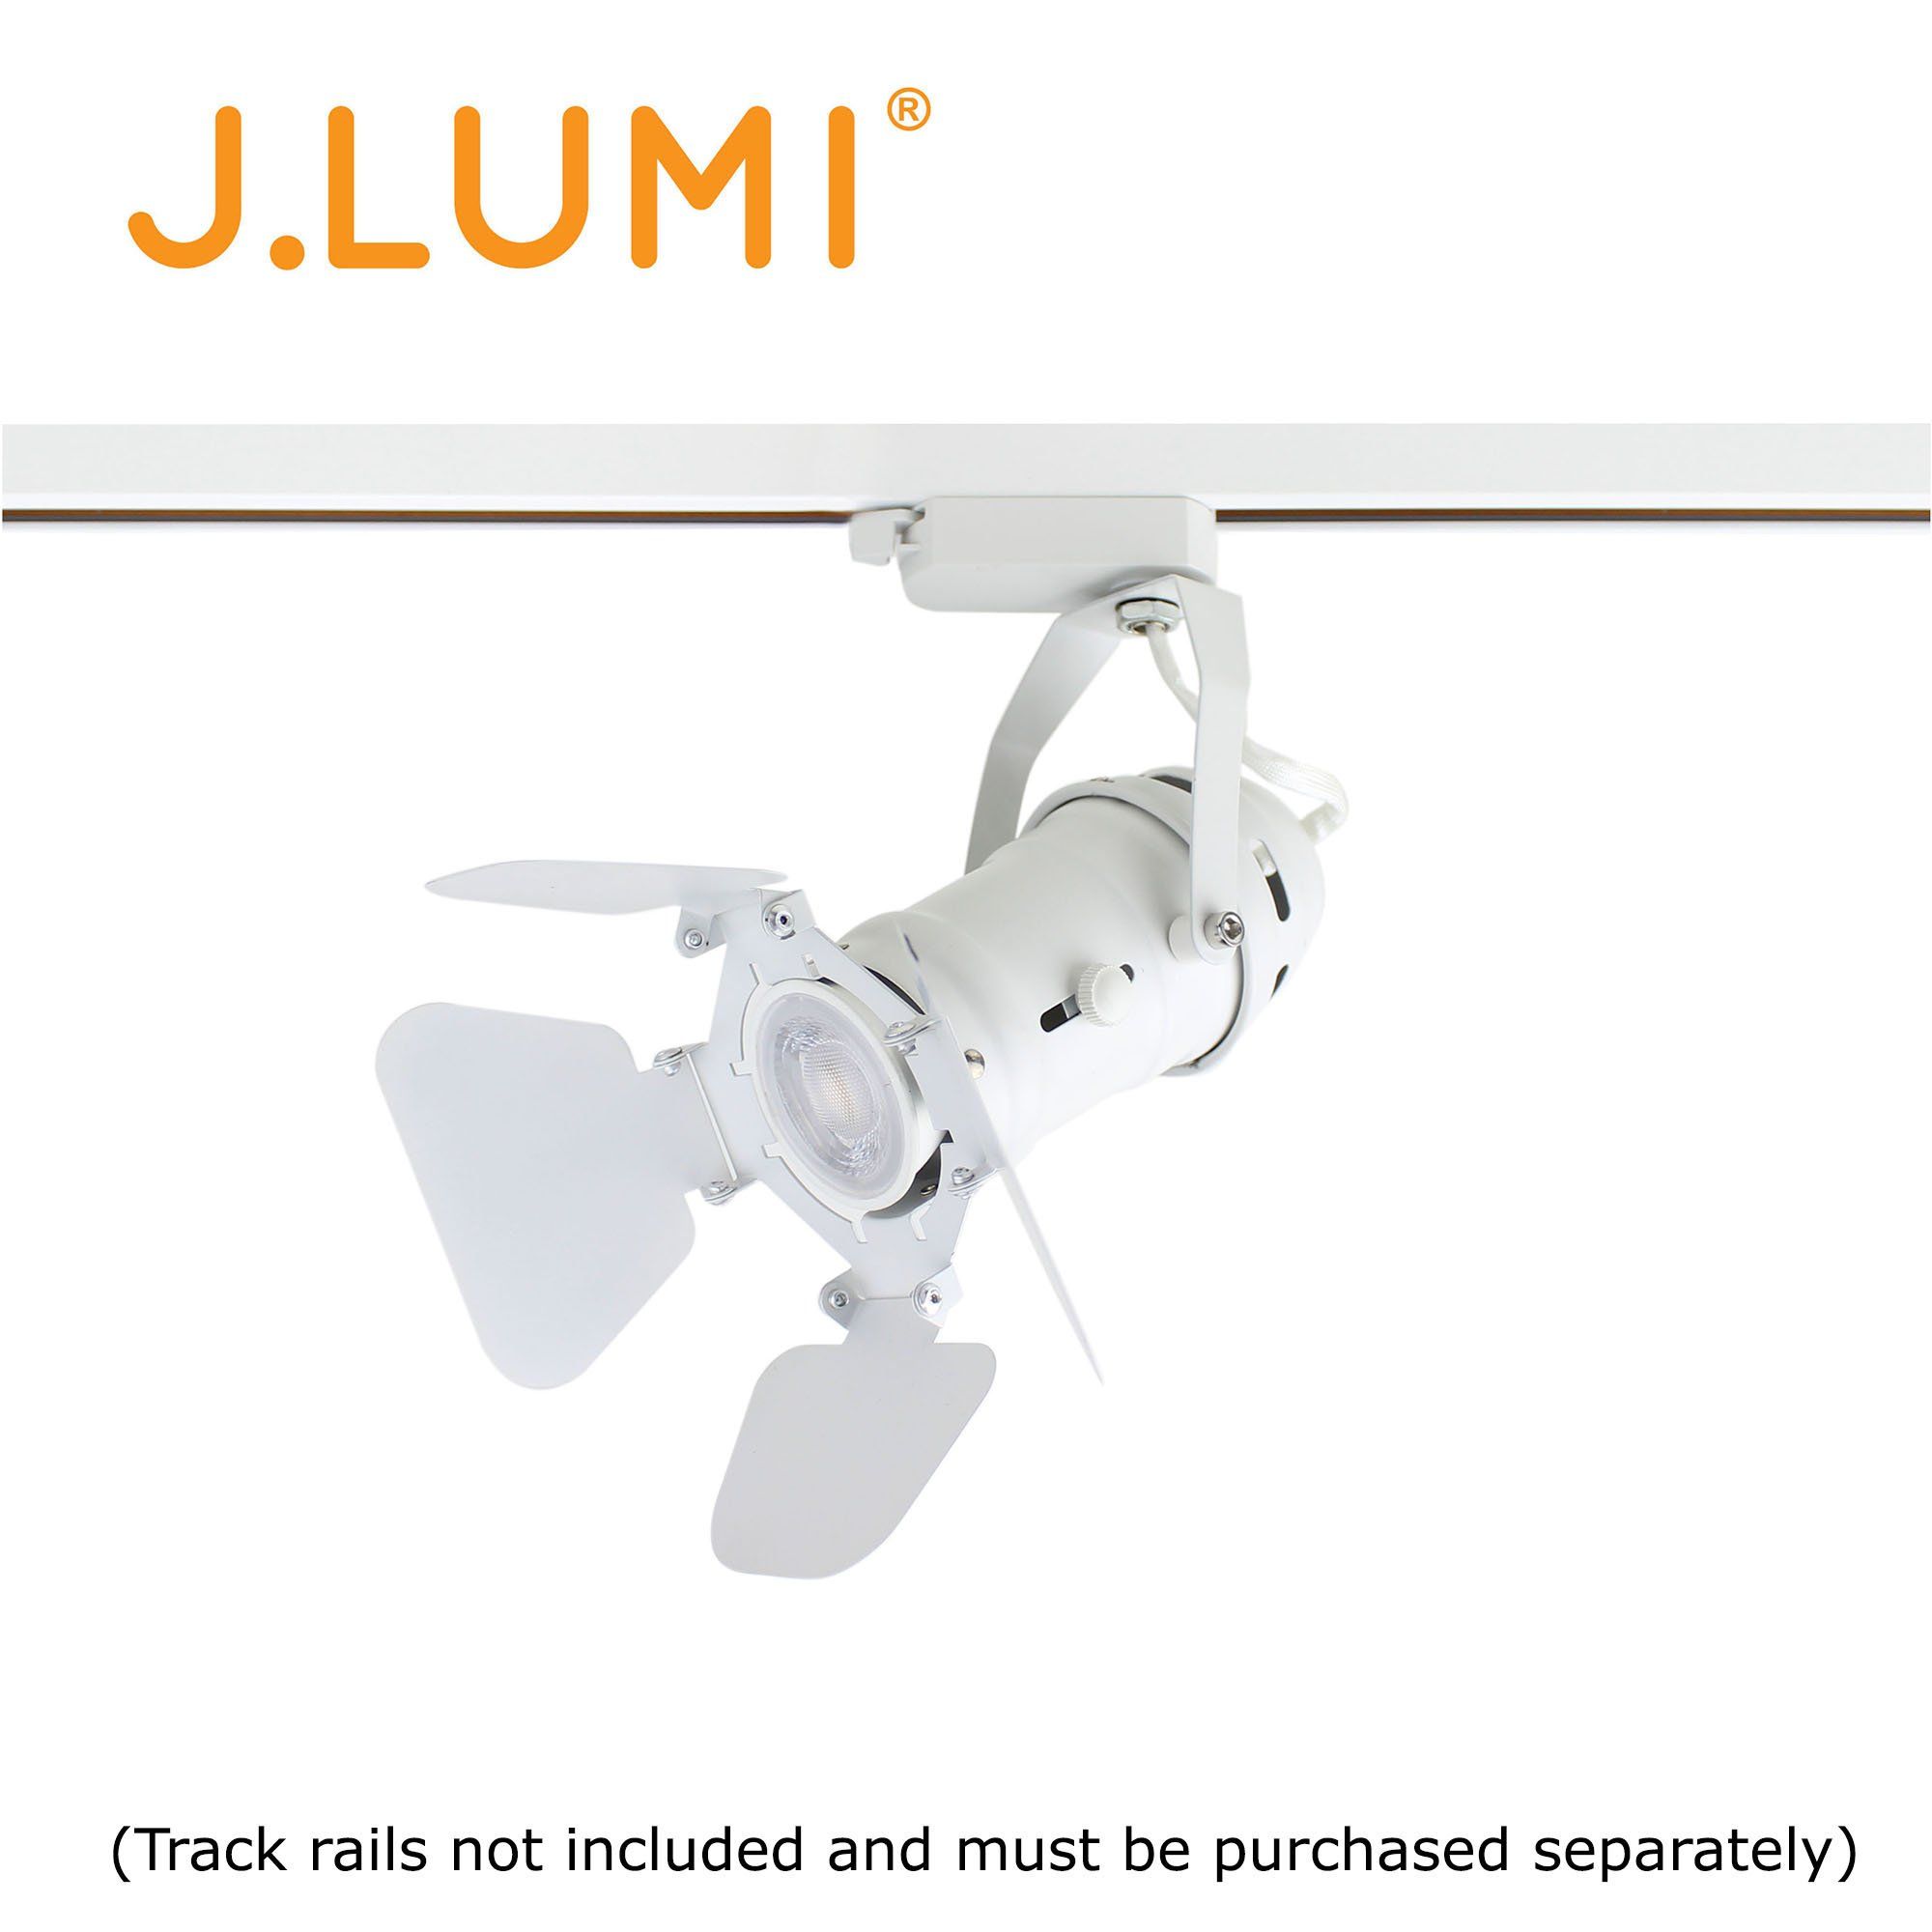 J.LUMI TRK9600W LED Track Light Fixture, Includes LED 5W Bulb | Vintage Mini Spotlight | Adjustable Tilt Angle, White Paint Finish | Compatible Rail RAL1002W (not Included) by J.LUMI (Image #6)